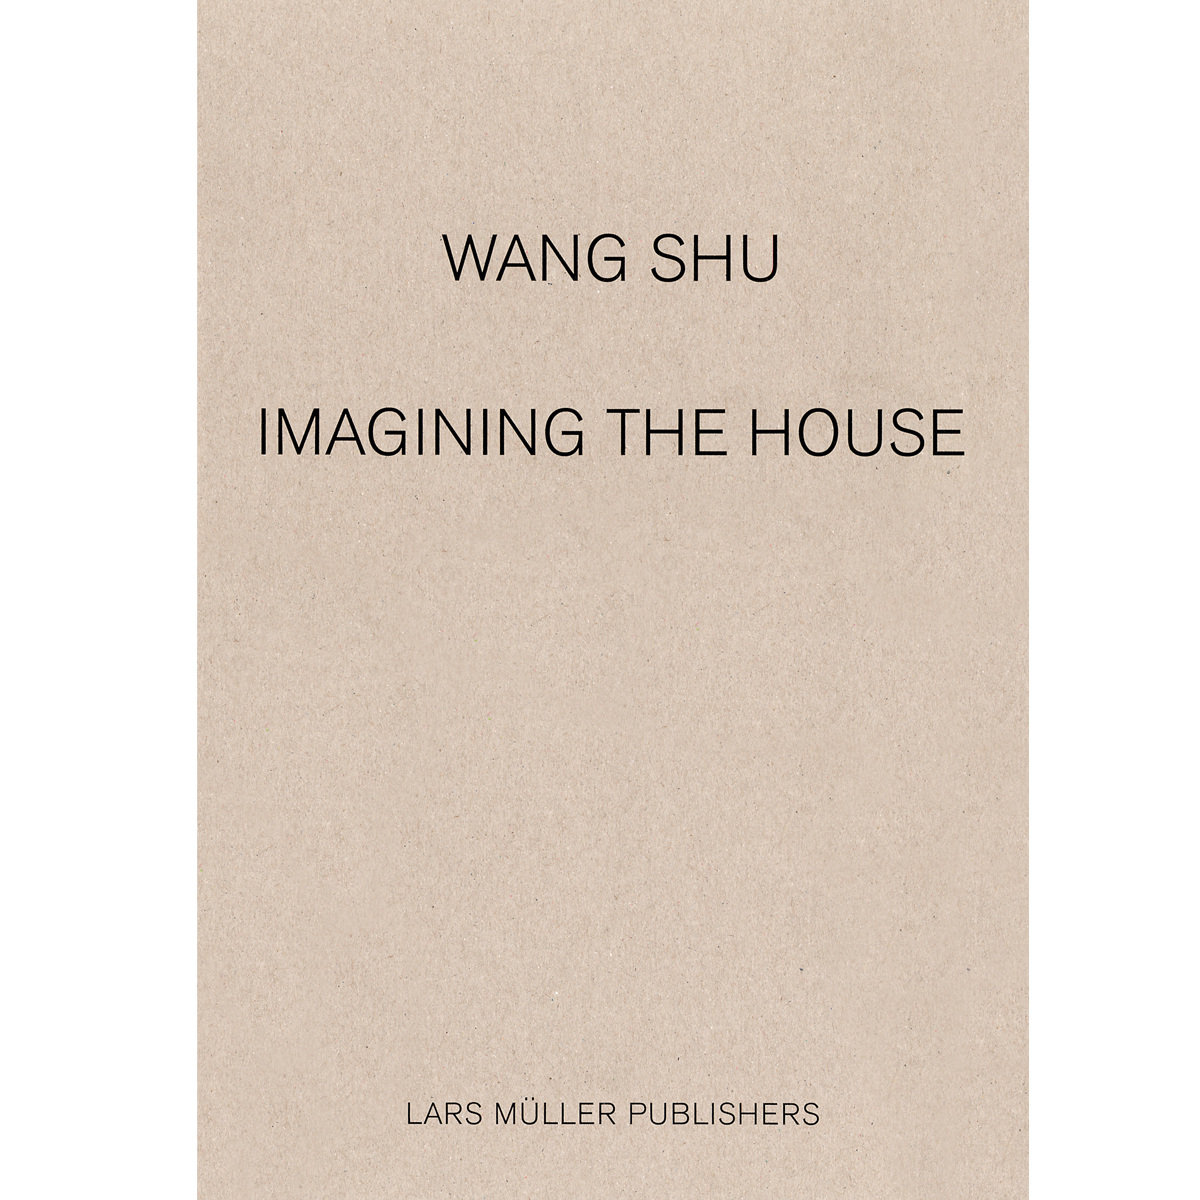 Imagining the House